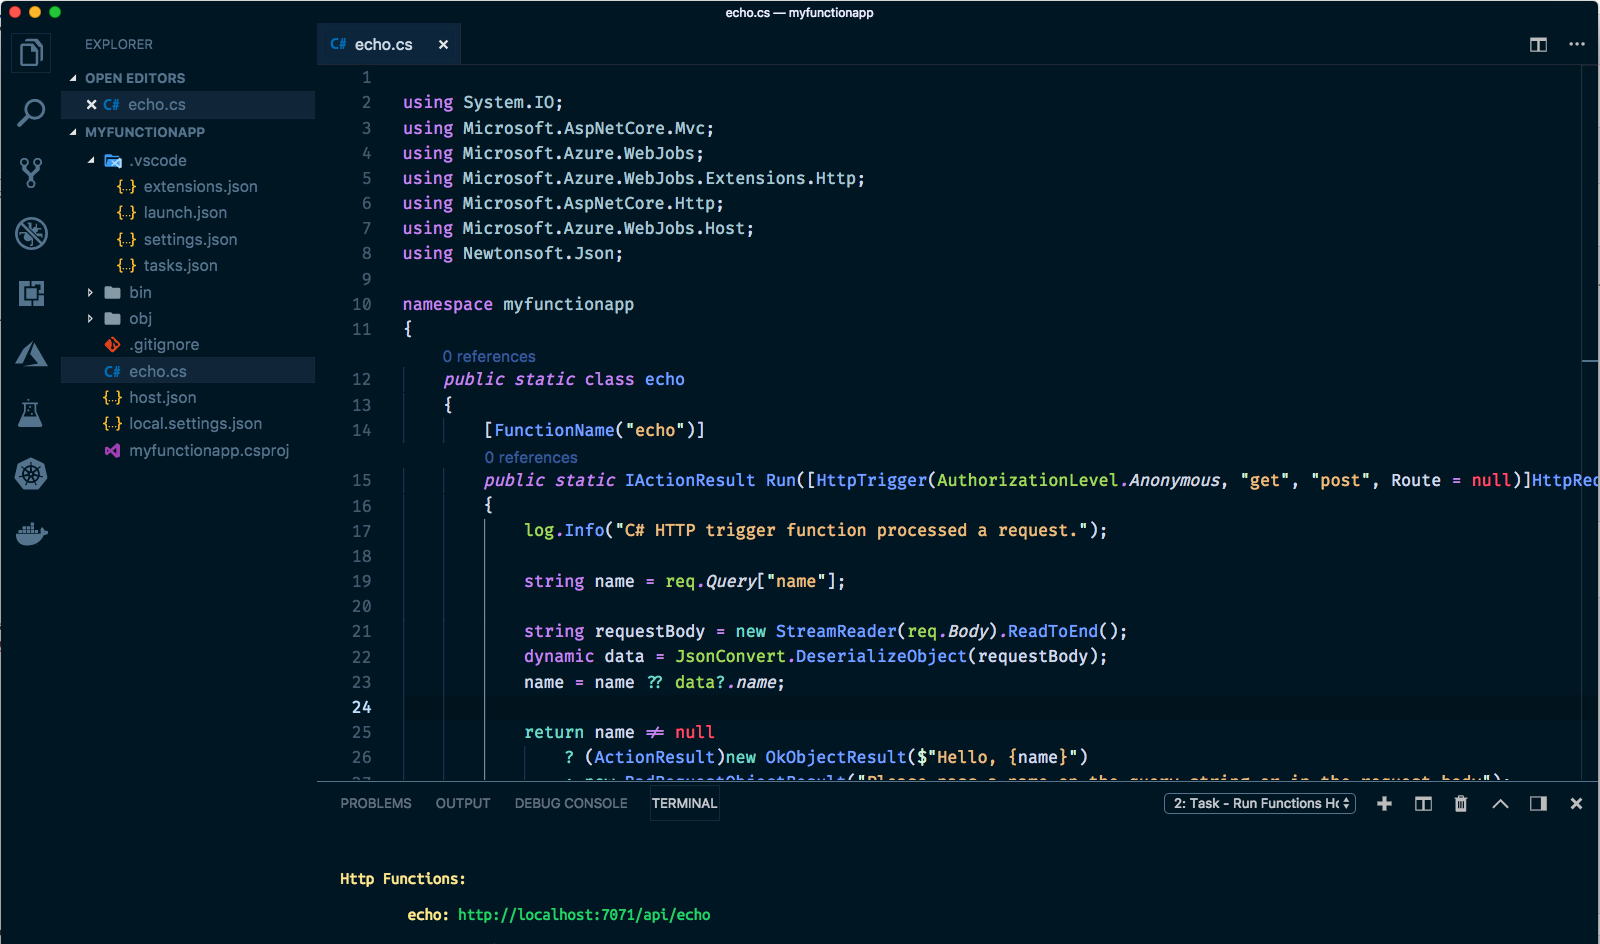 VS Code Screenshot of new function app